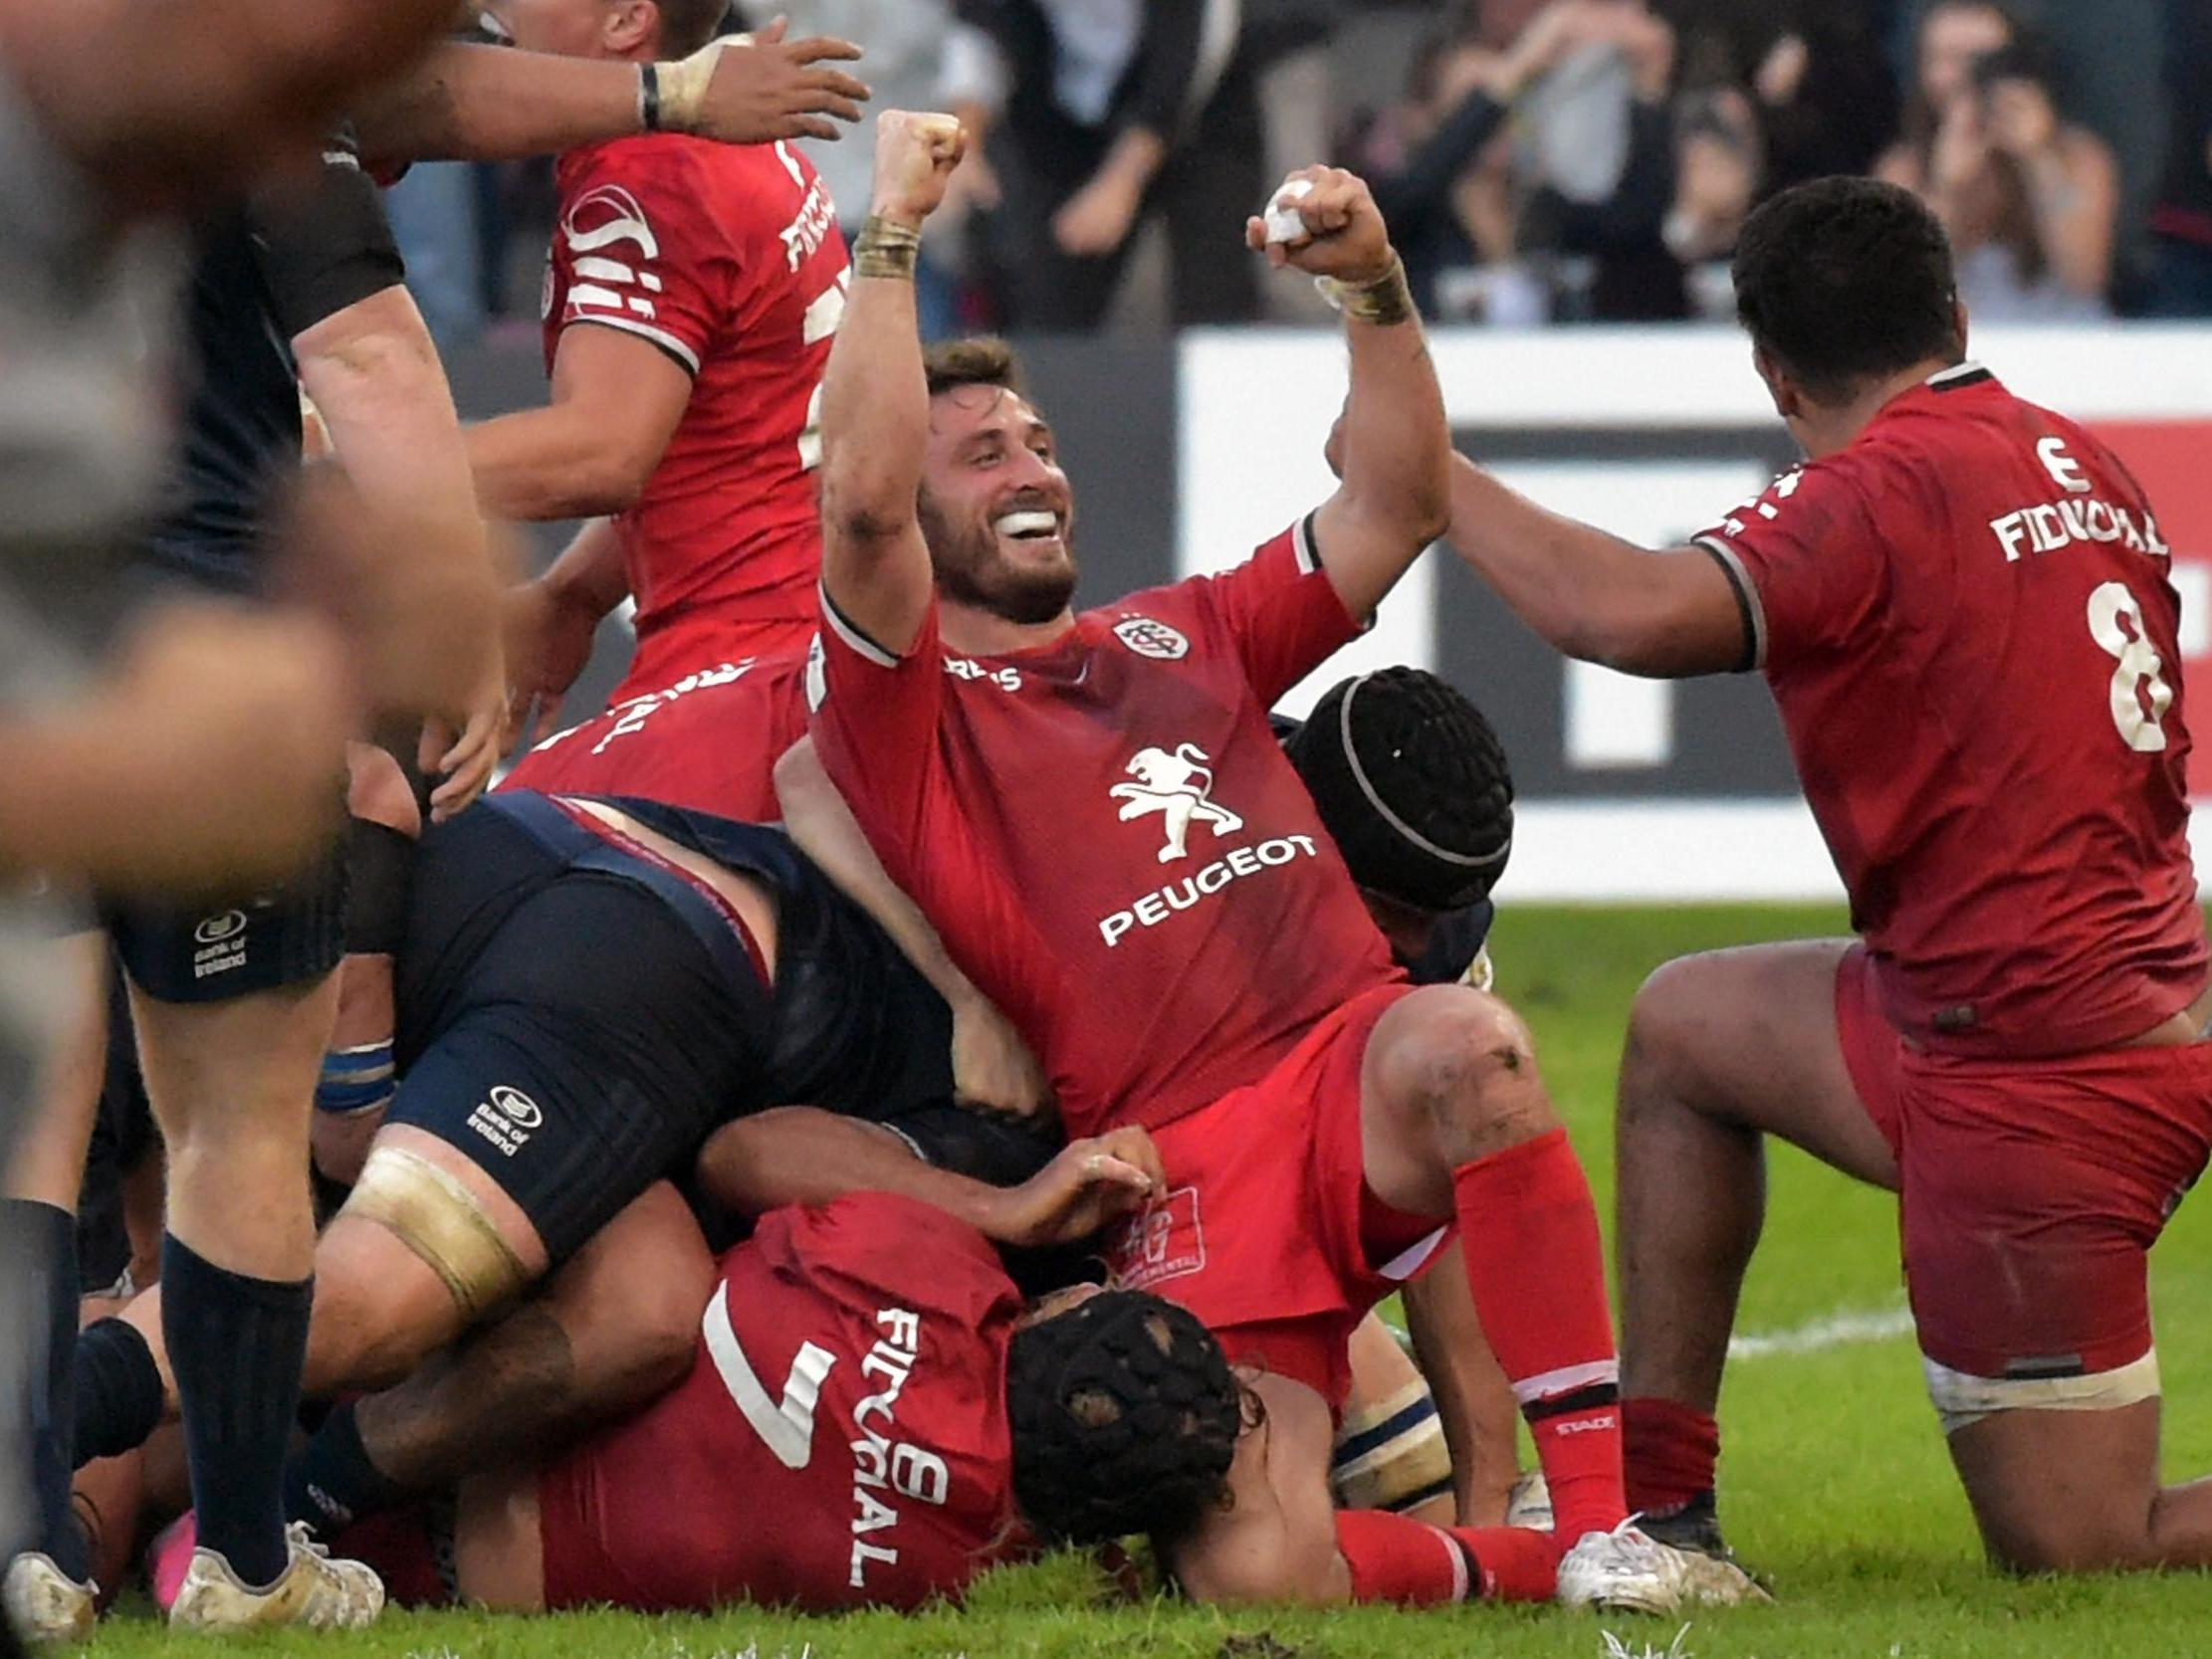 Champions Cup: Two rounds down, a once mighty European giant appears to have awoken